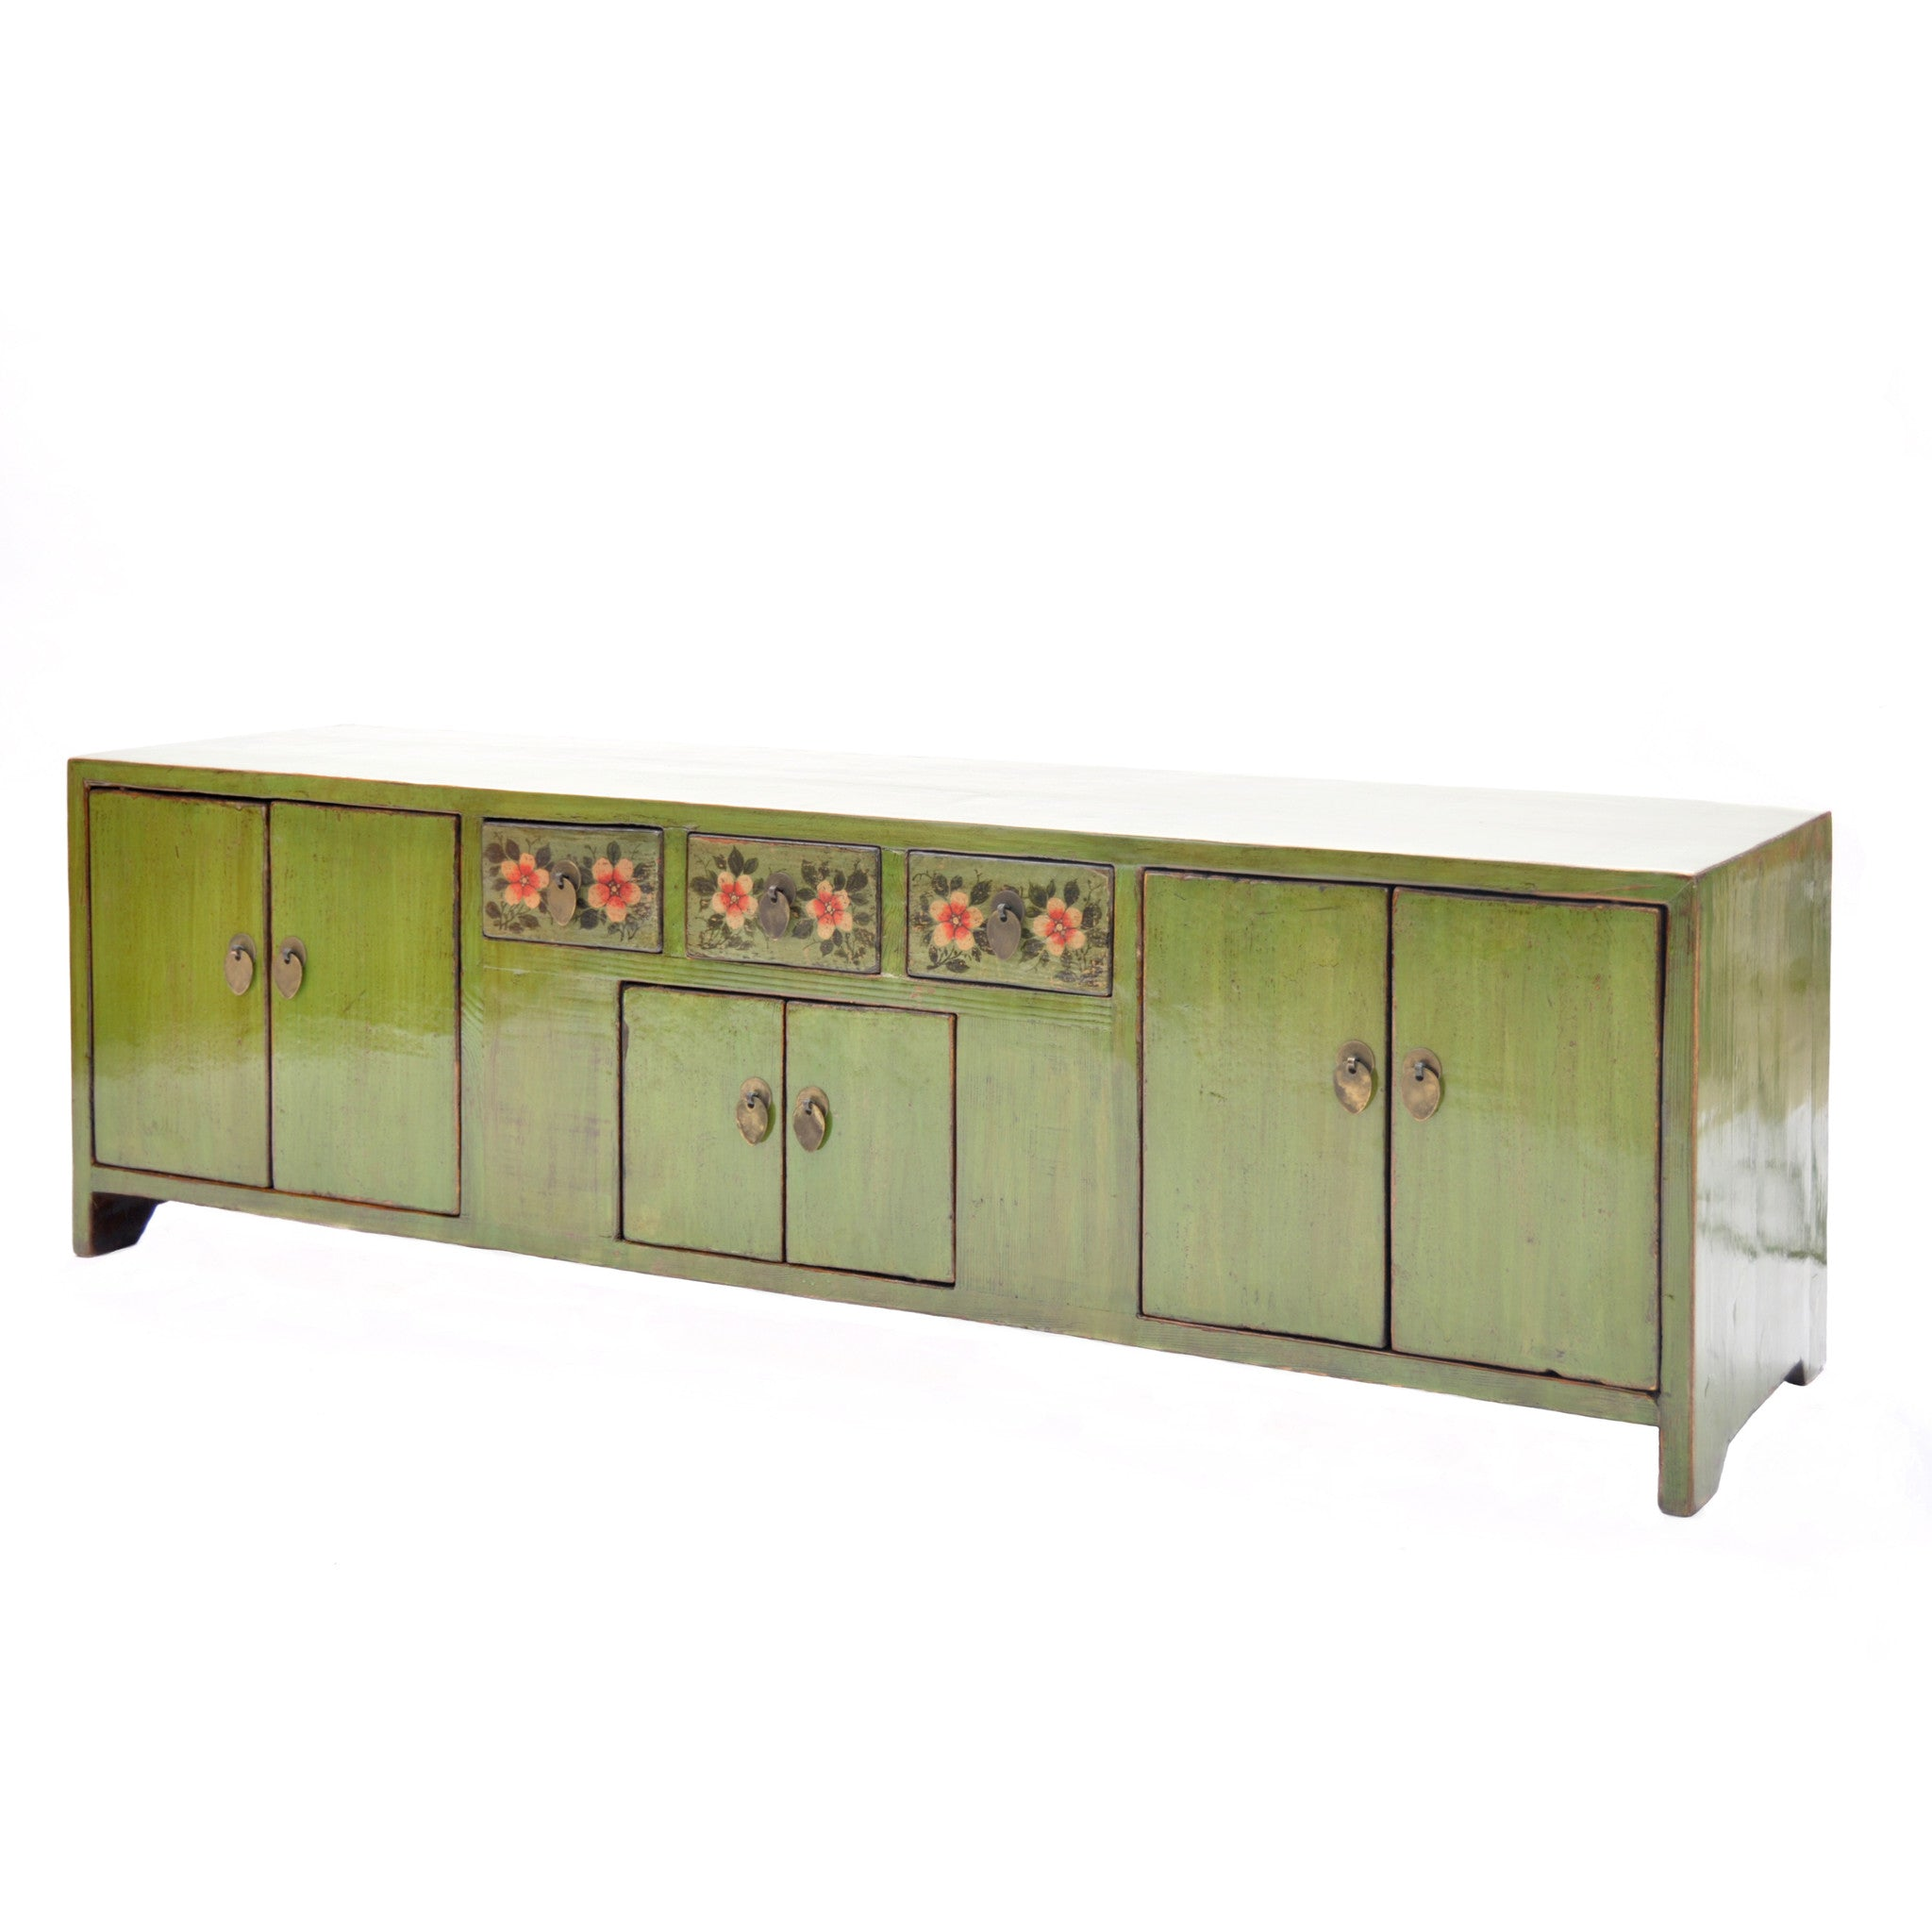 Low Green Chinese Sideboard with Red Flowers side view